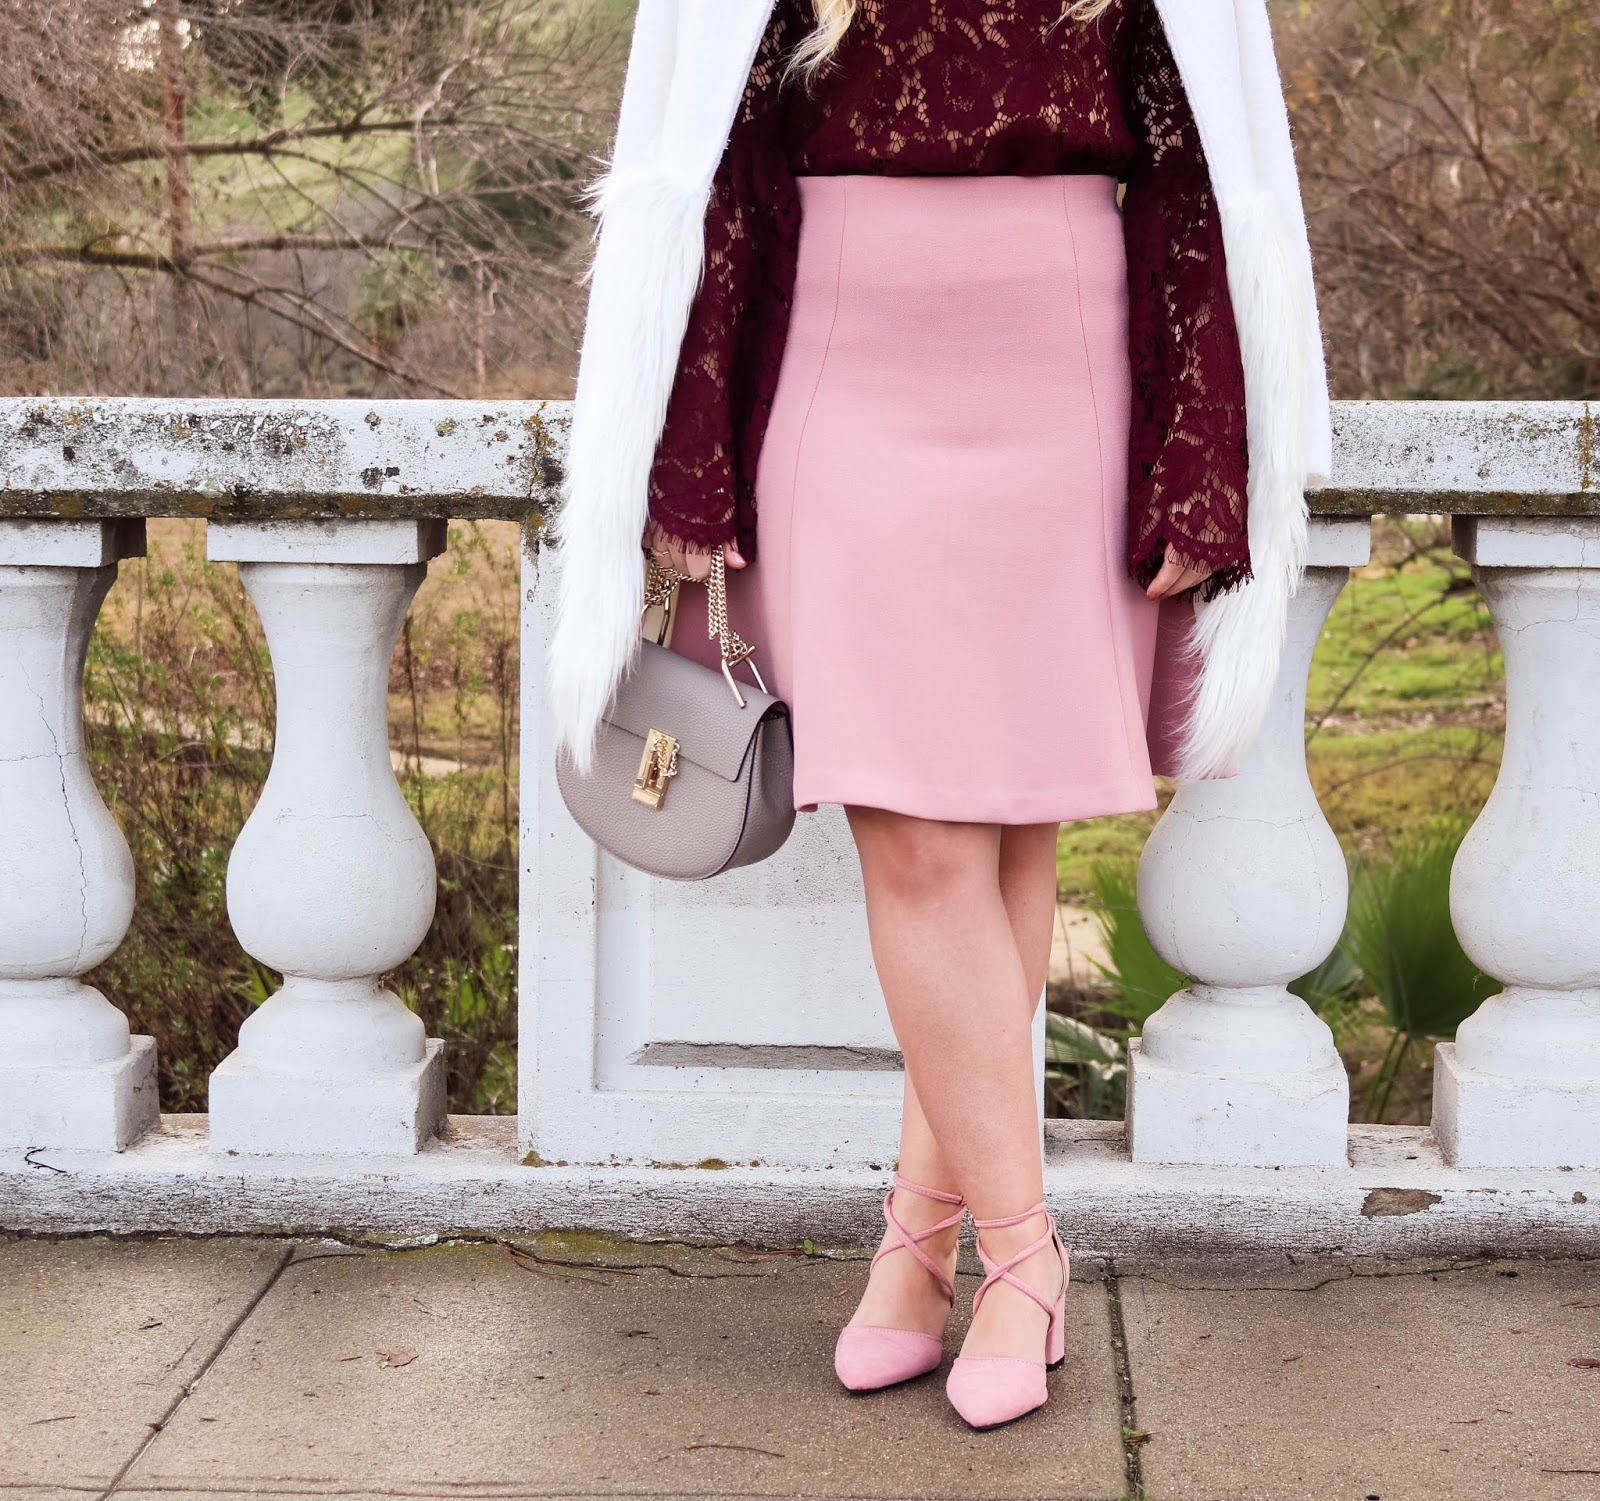 Elizabeth Hugen of Lizzie in Lace styles a Pink and Plum Valentine's Day Outfit